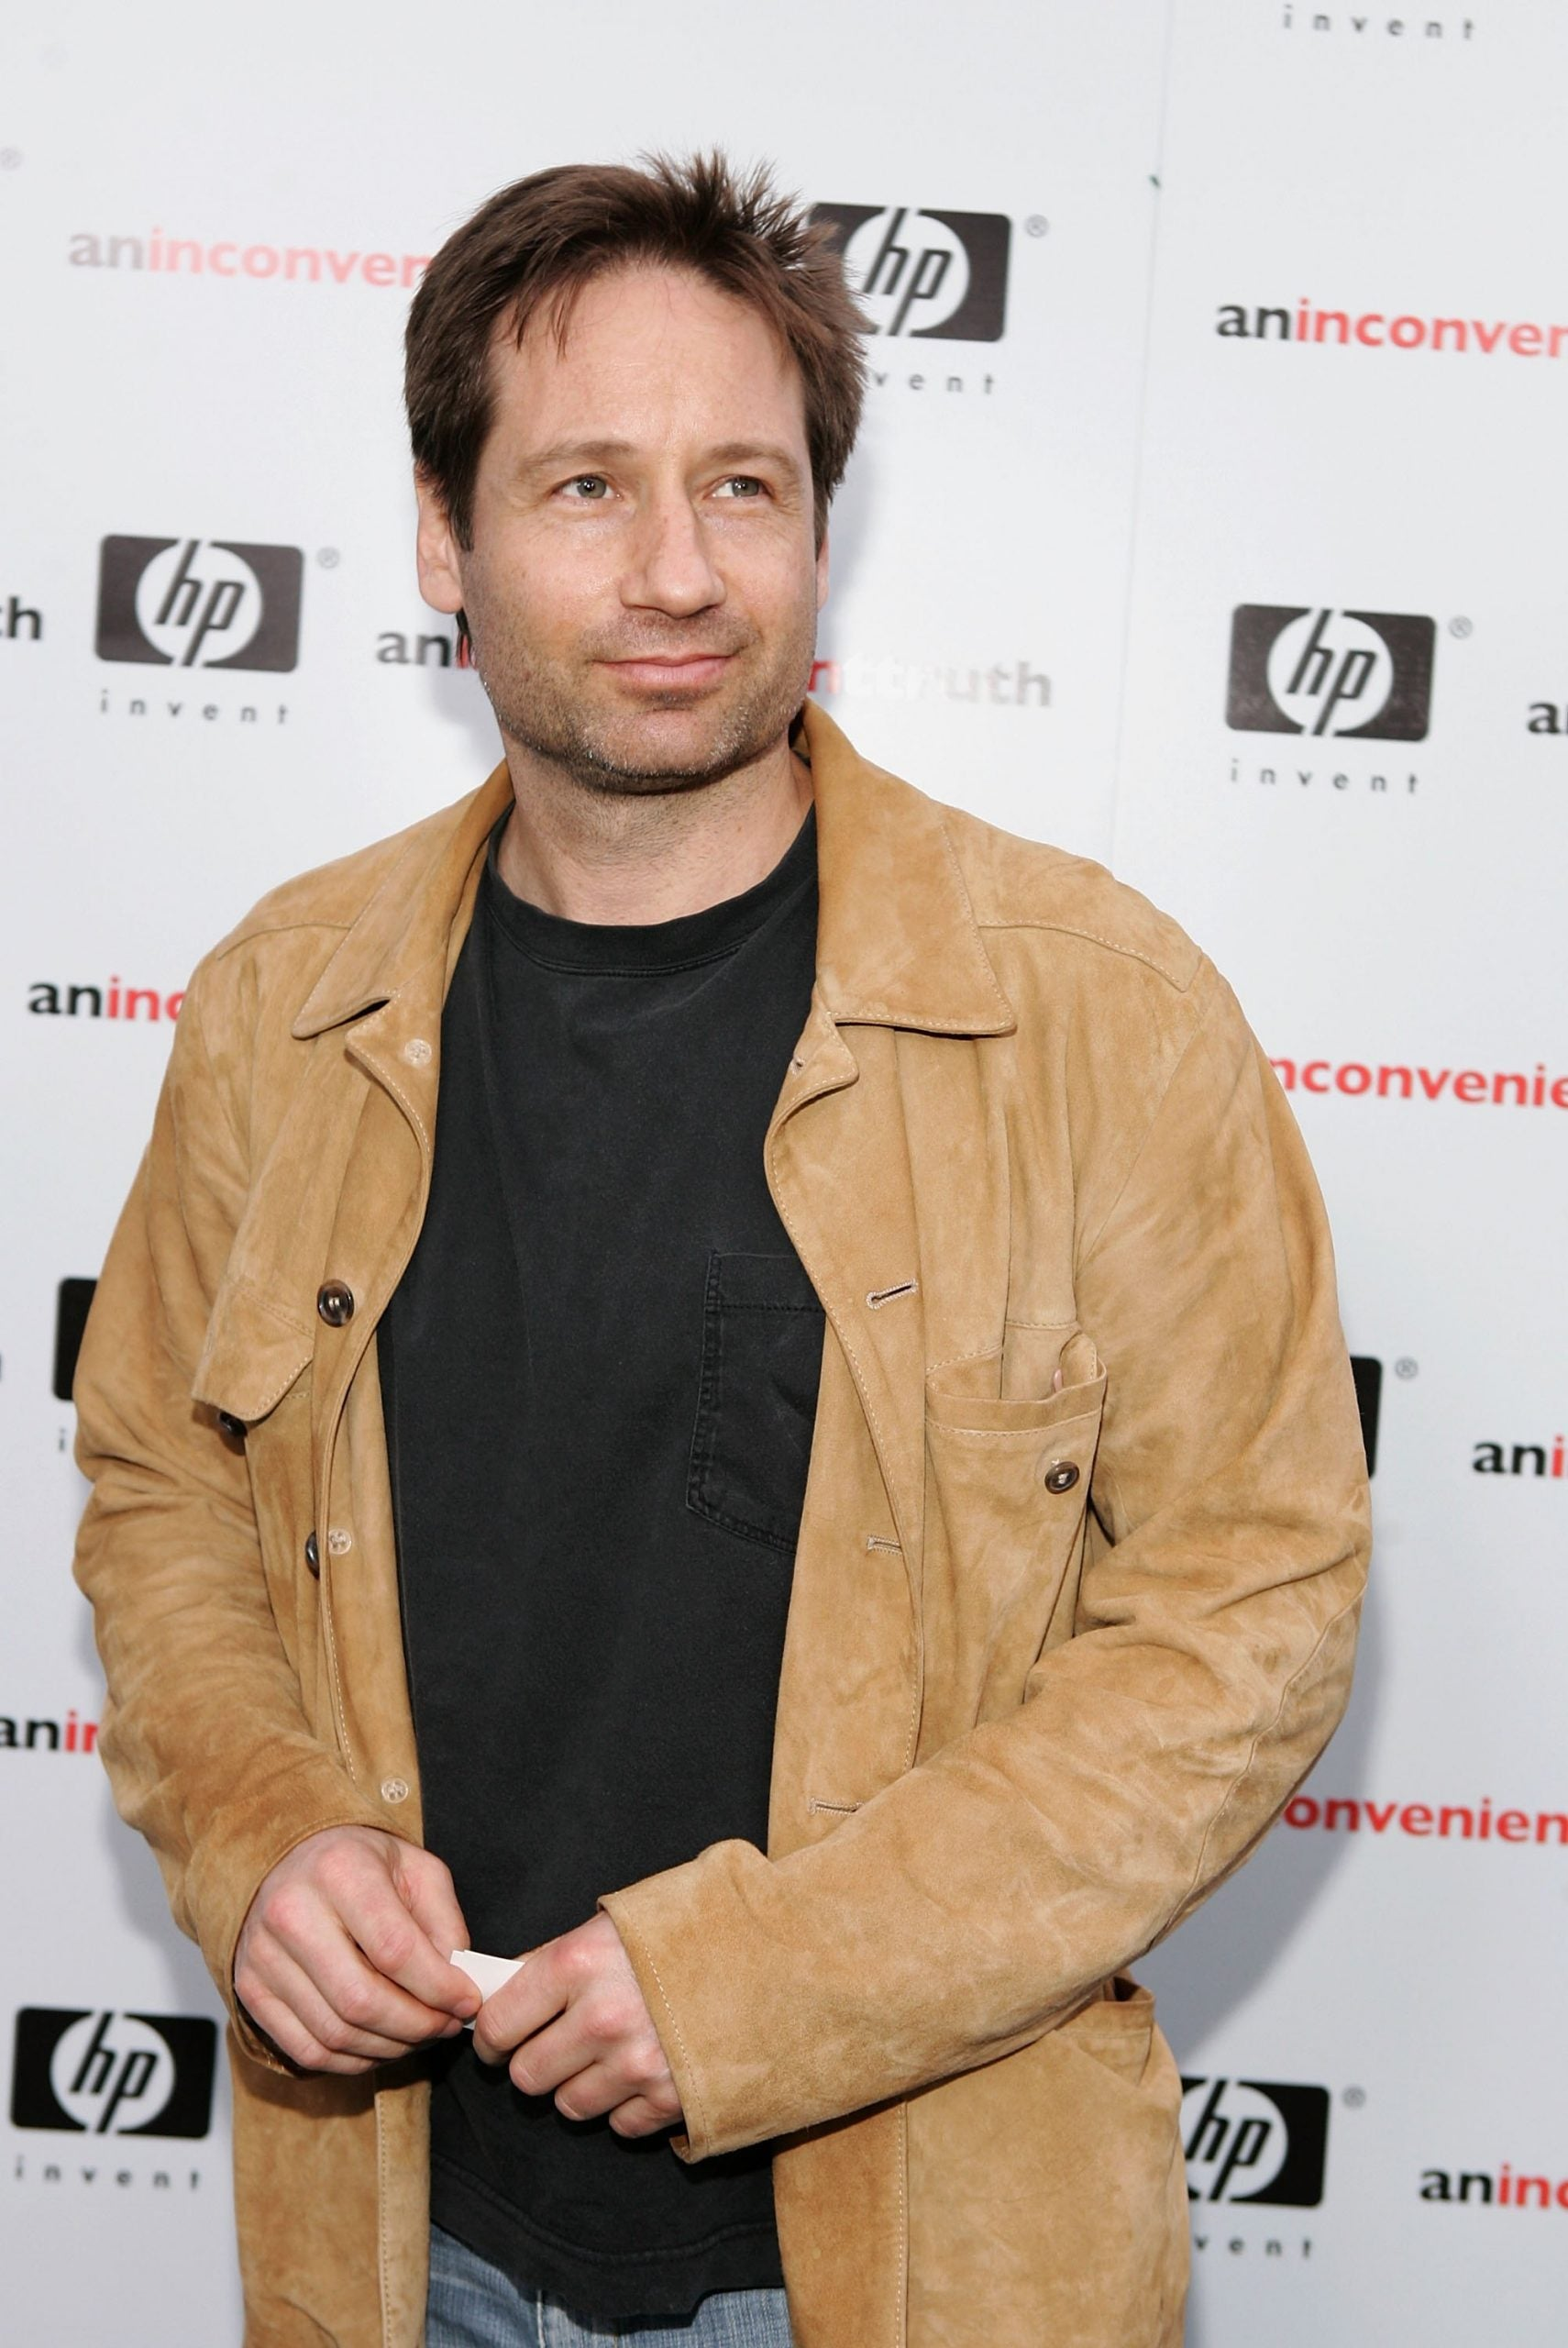 Watching Agent Mulder busting Eighties rock moves, I'm struck by a strange sense of sincerity